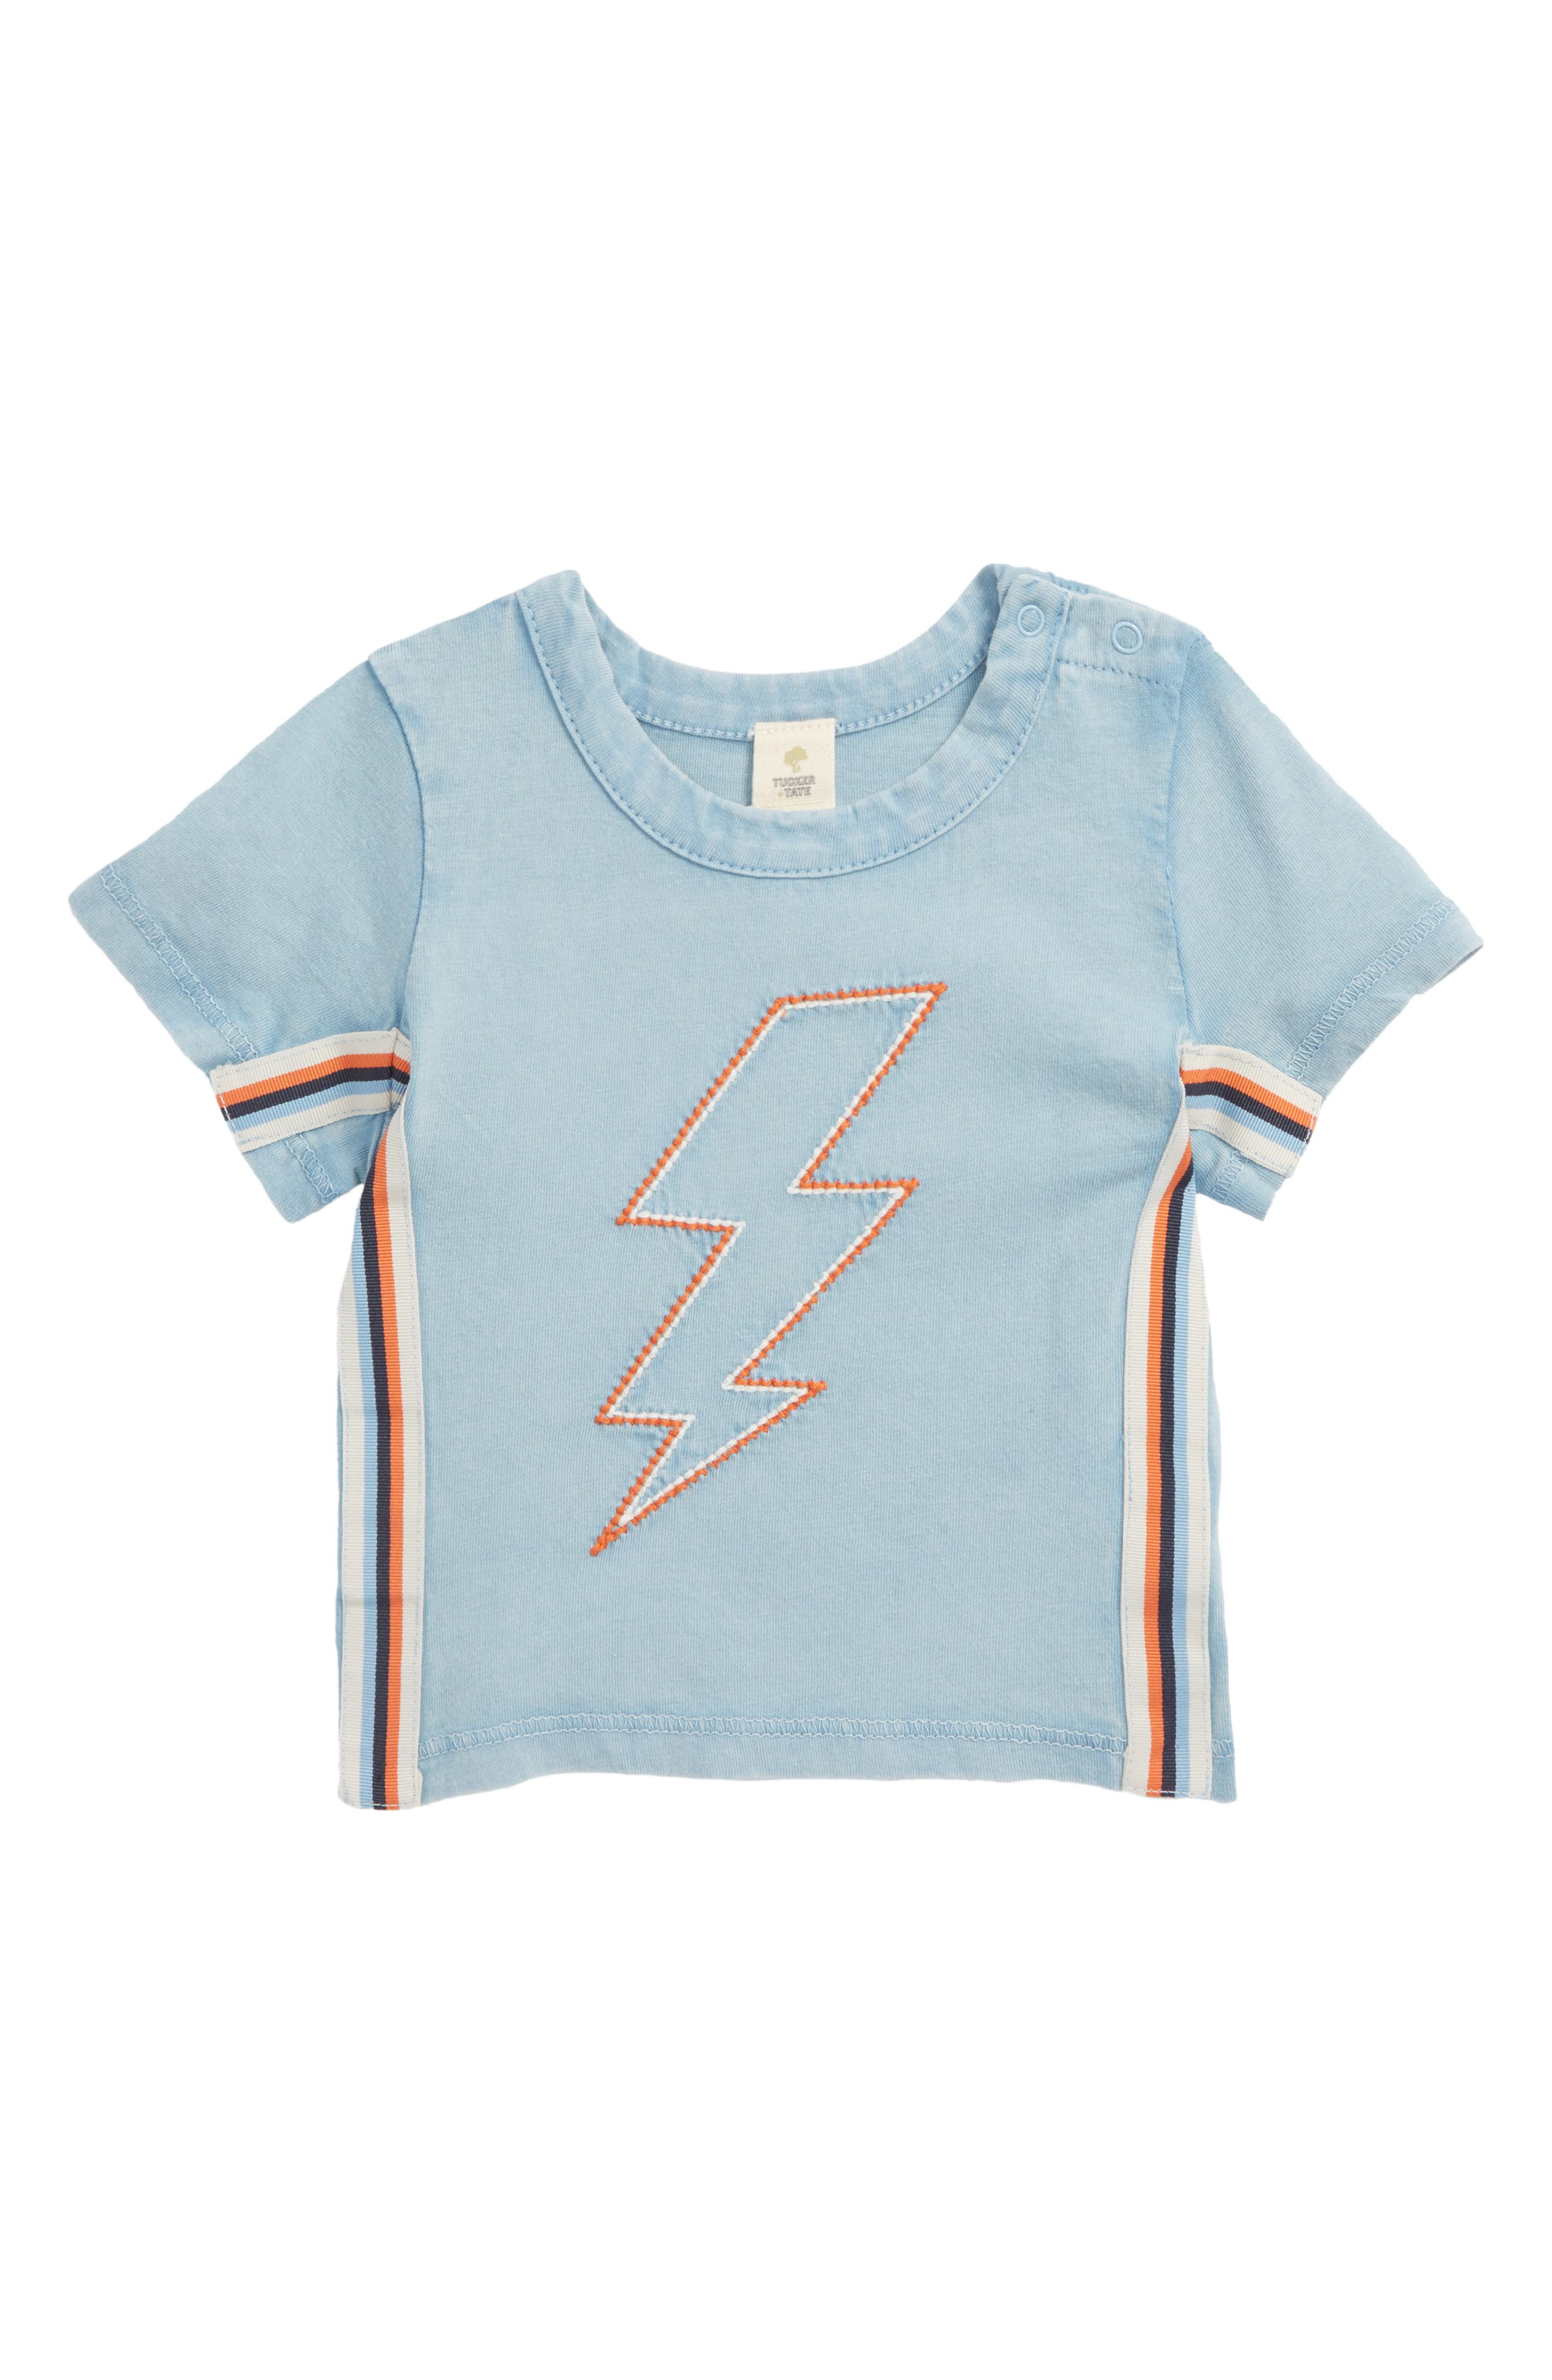 Embroidered T-Shirt,                         Main,                         color, Blue Chambray